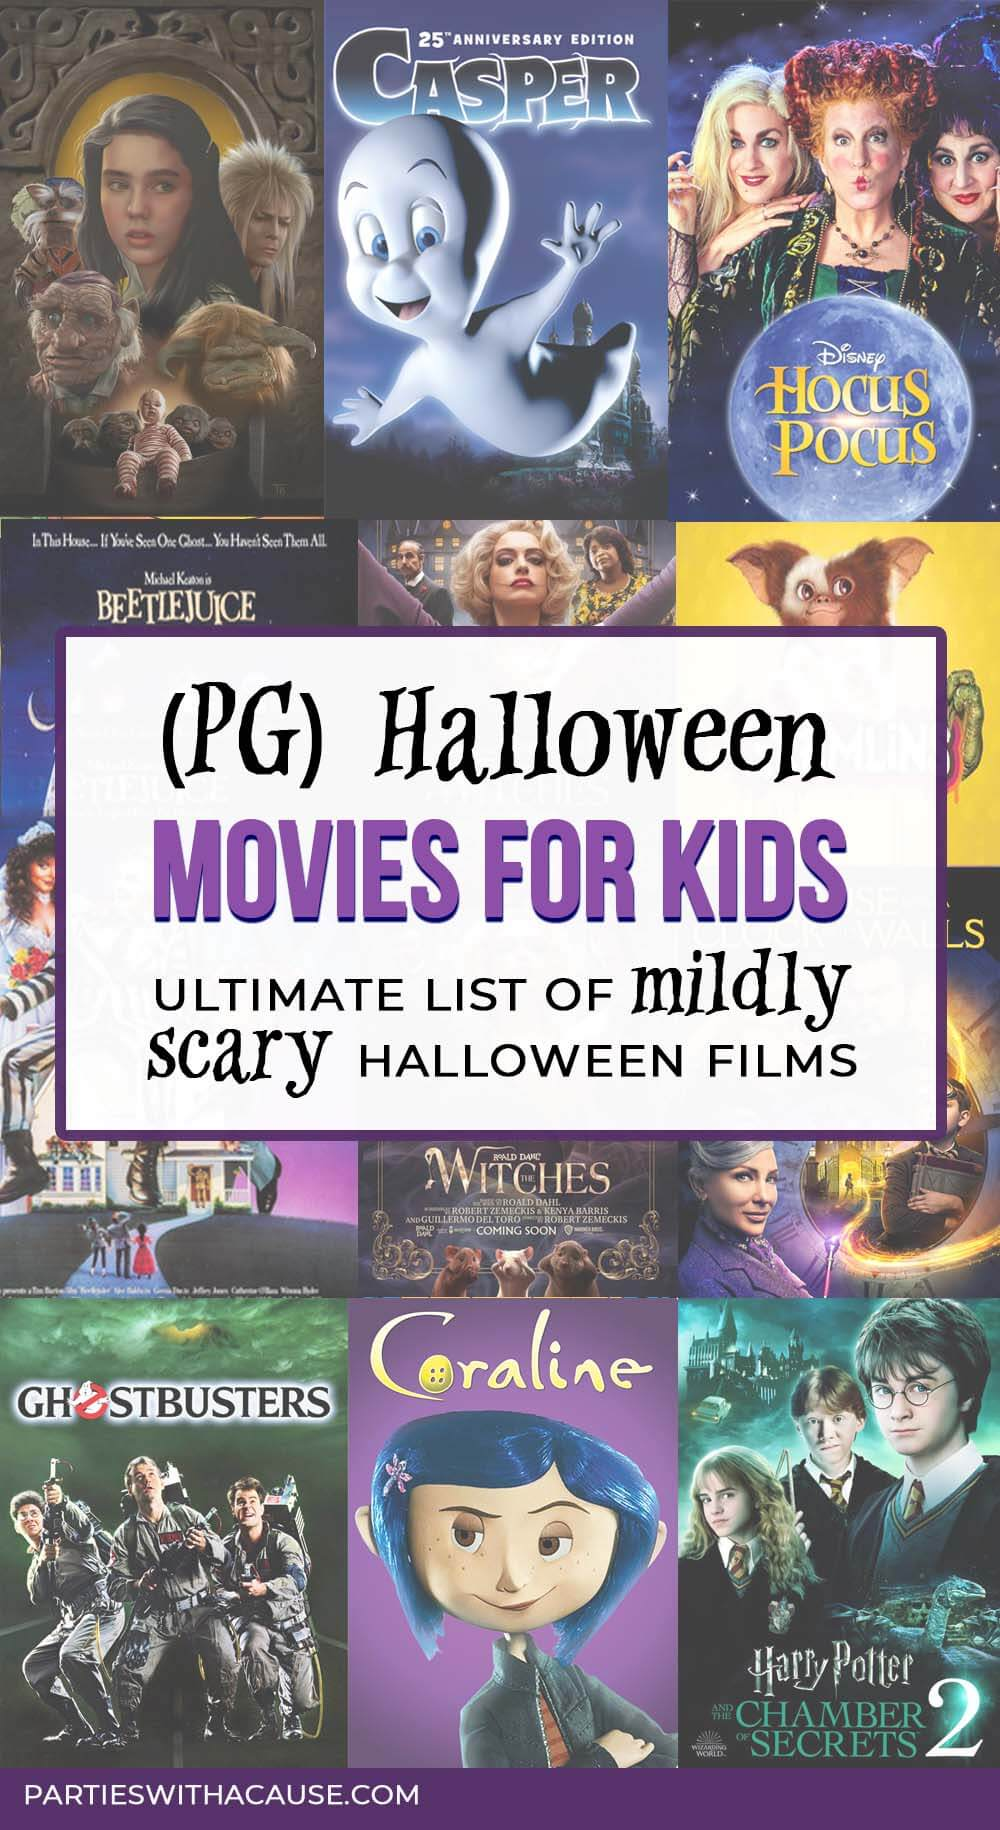 PG rated Halloween movies kids will love by Salt Lake Party Stylist